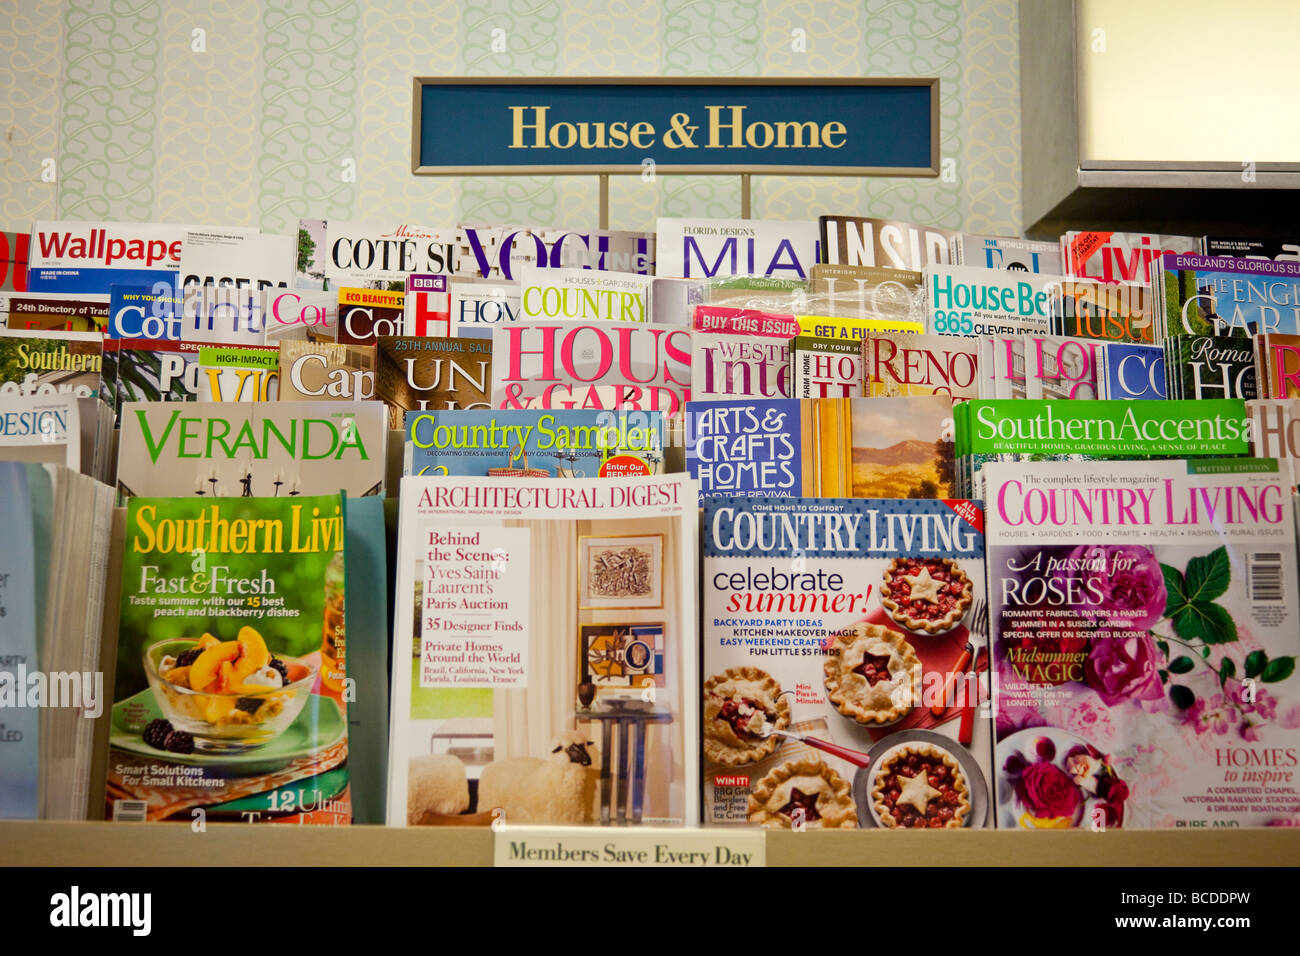 Home Magazines Usa house and home magazines on shelves, barnes and noble, usa stock